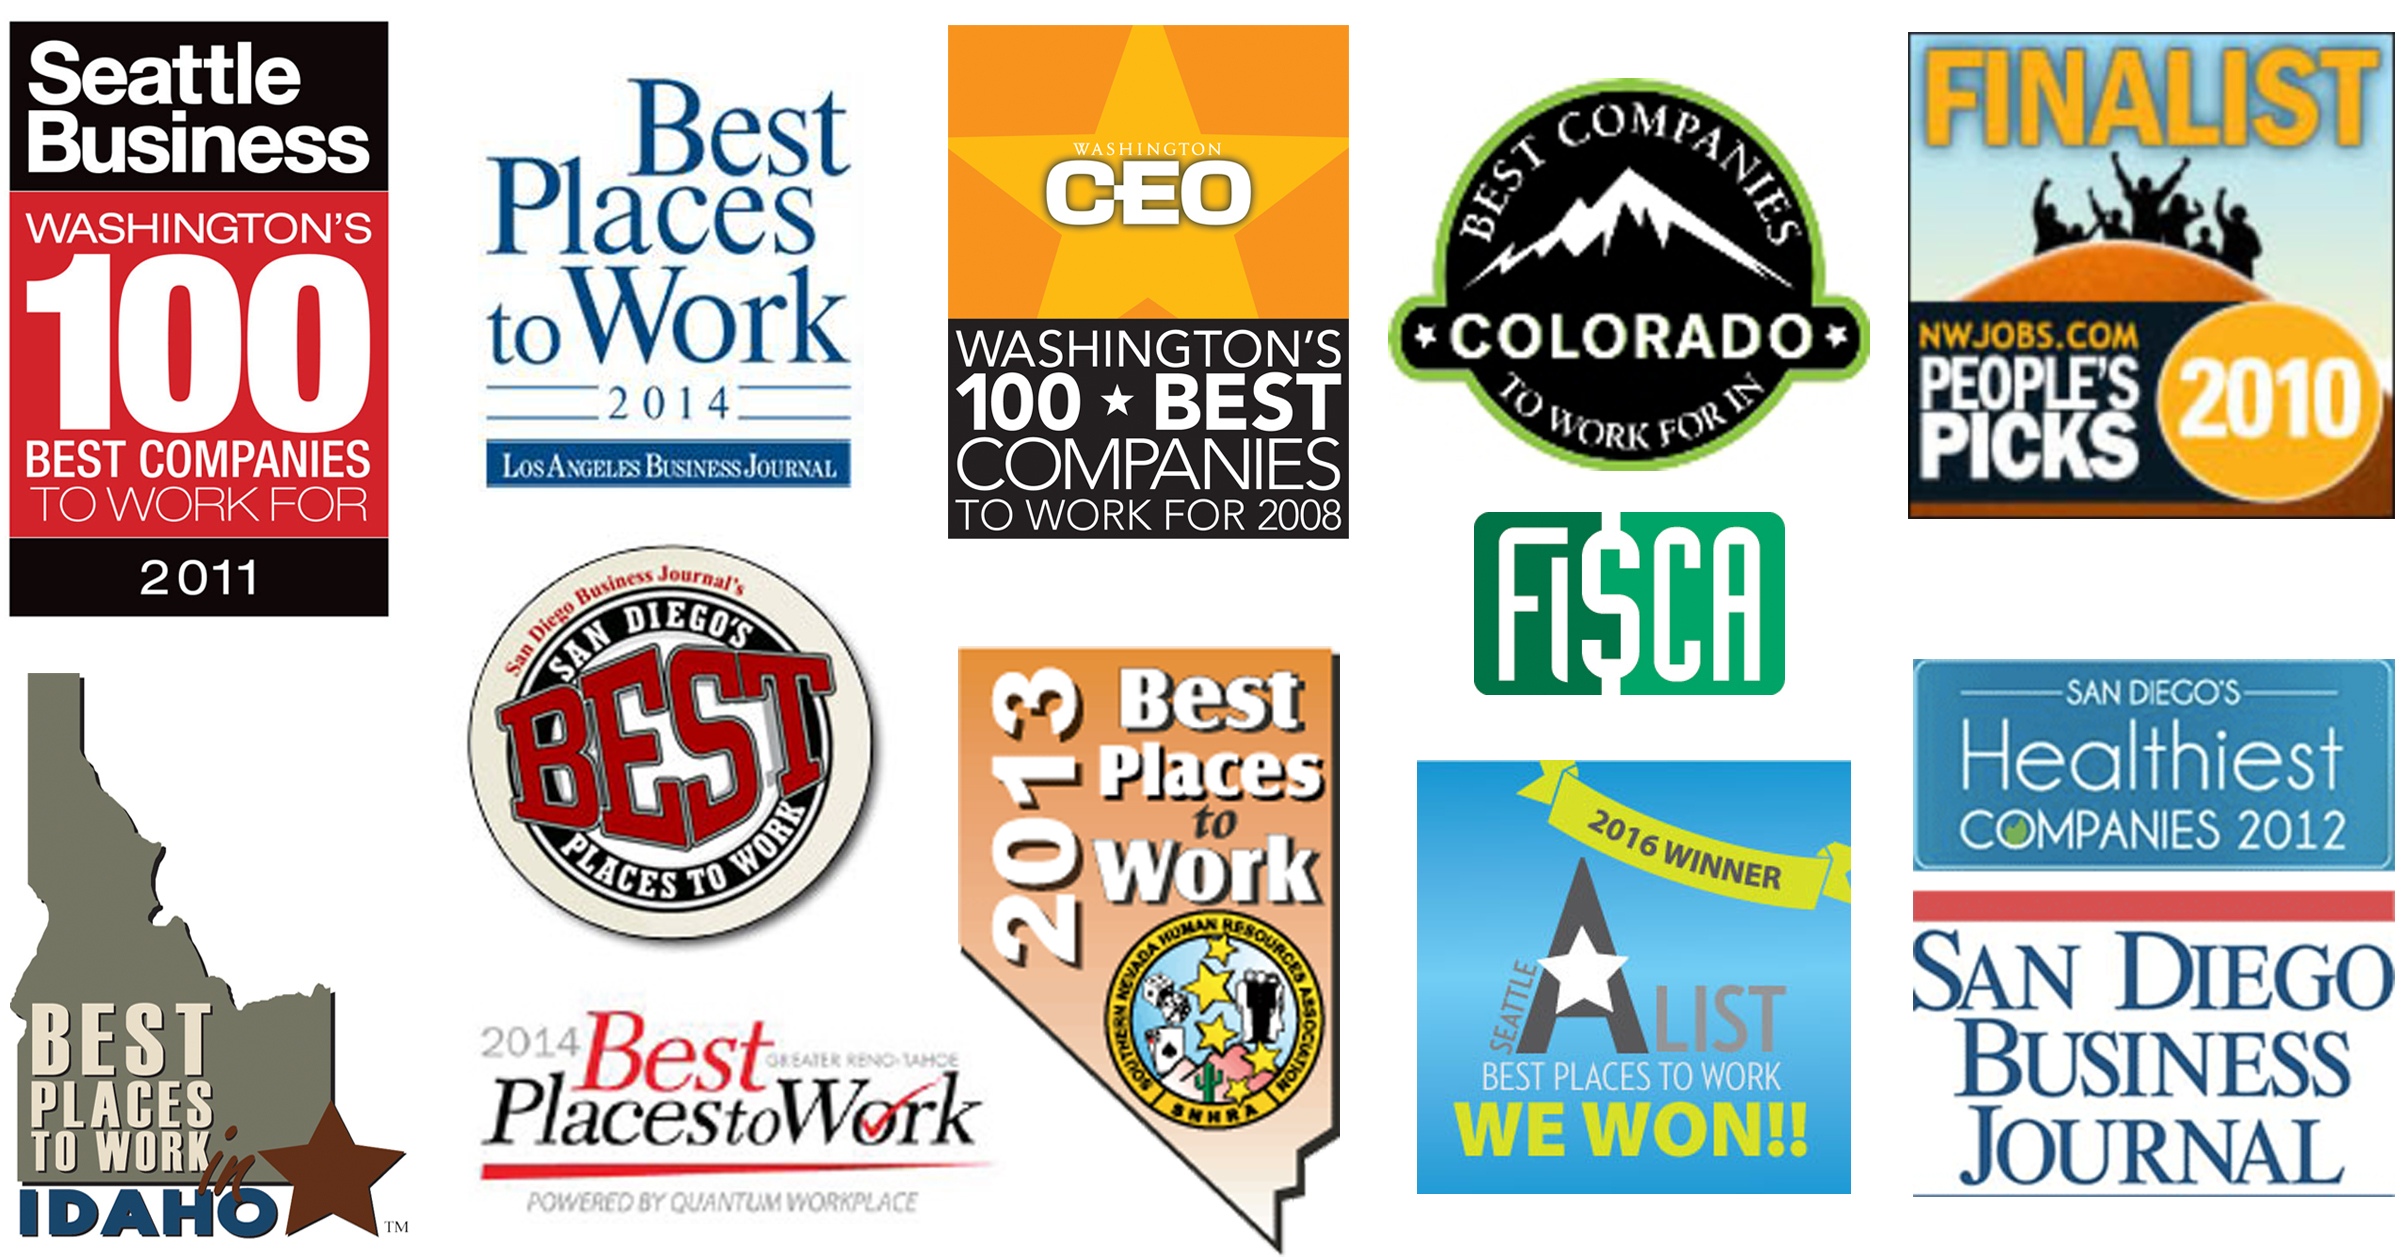 Collage of Best Places to Work images.